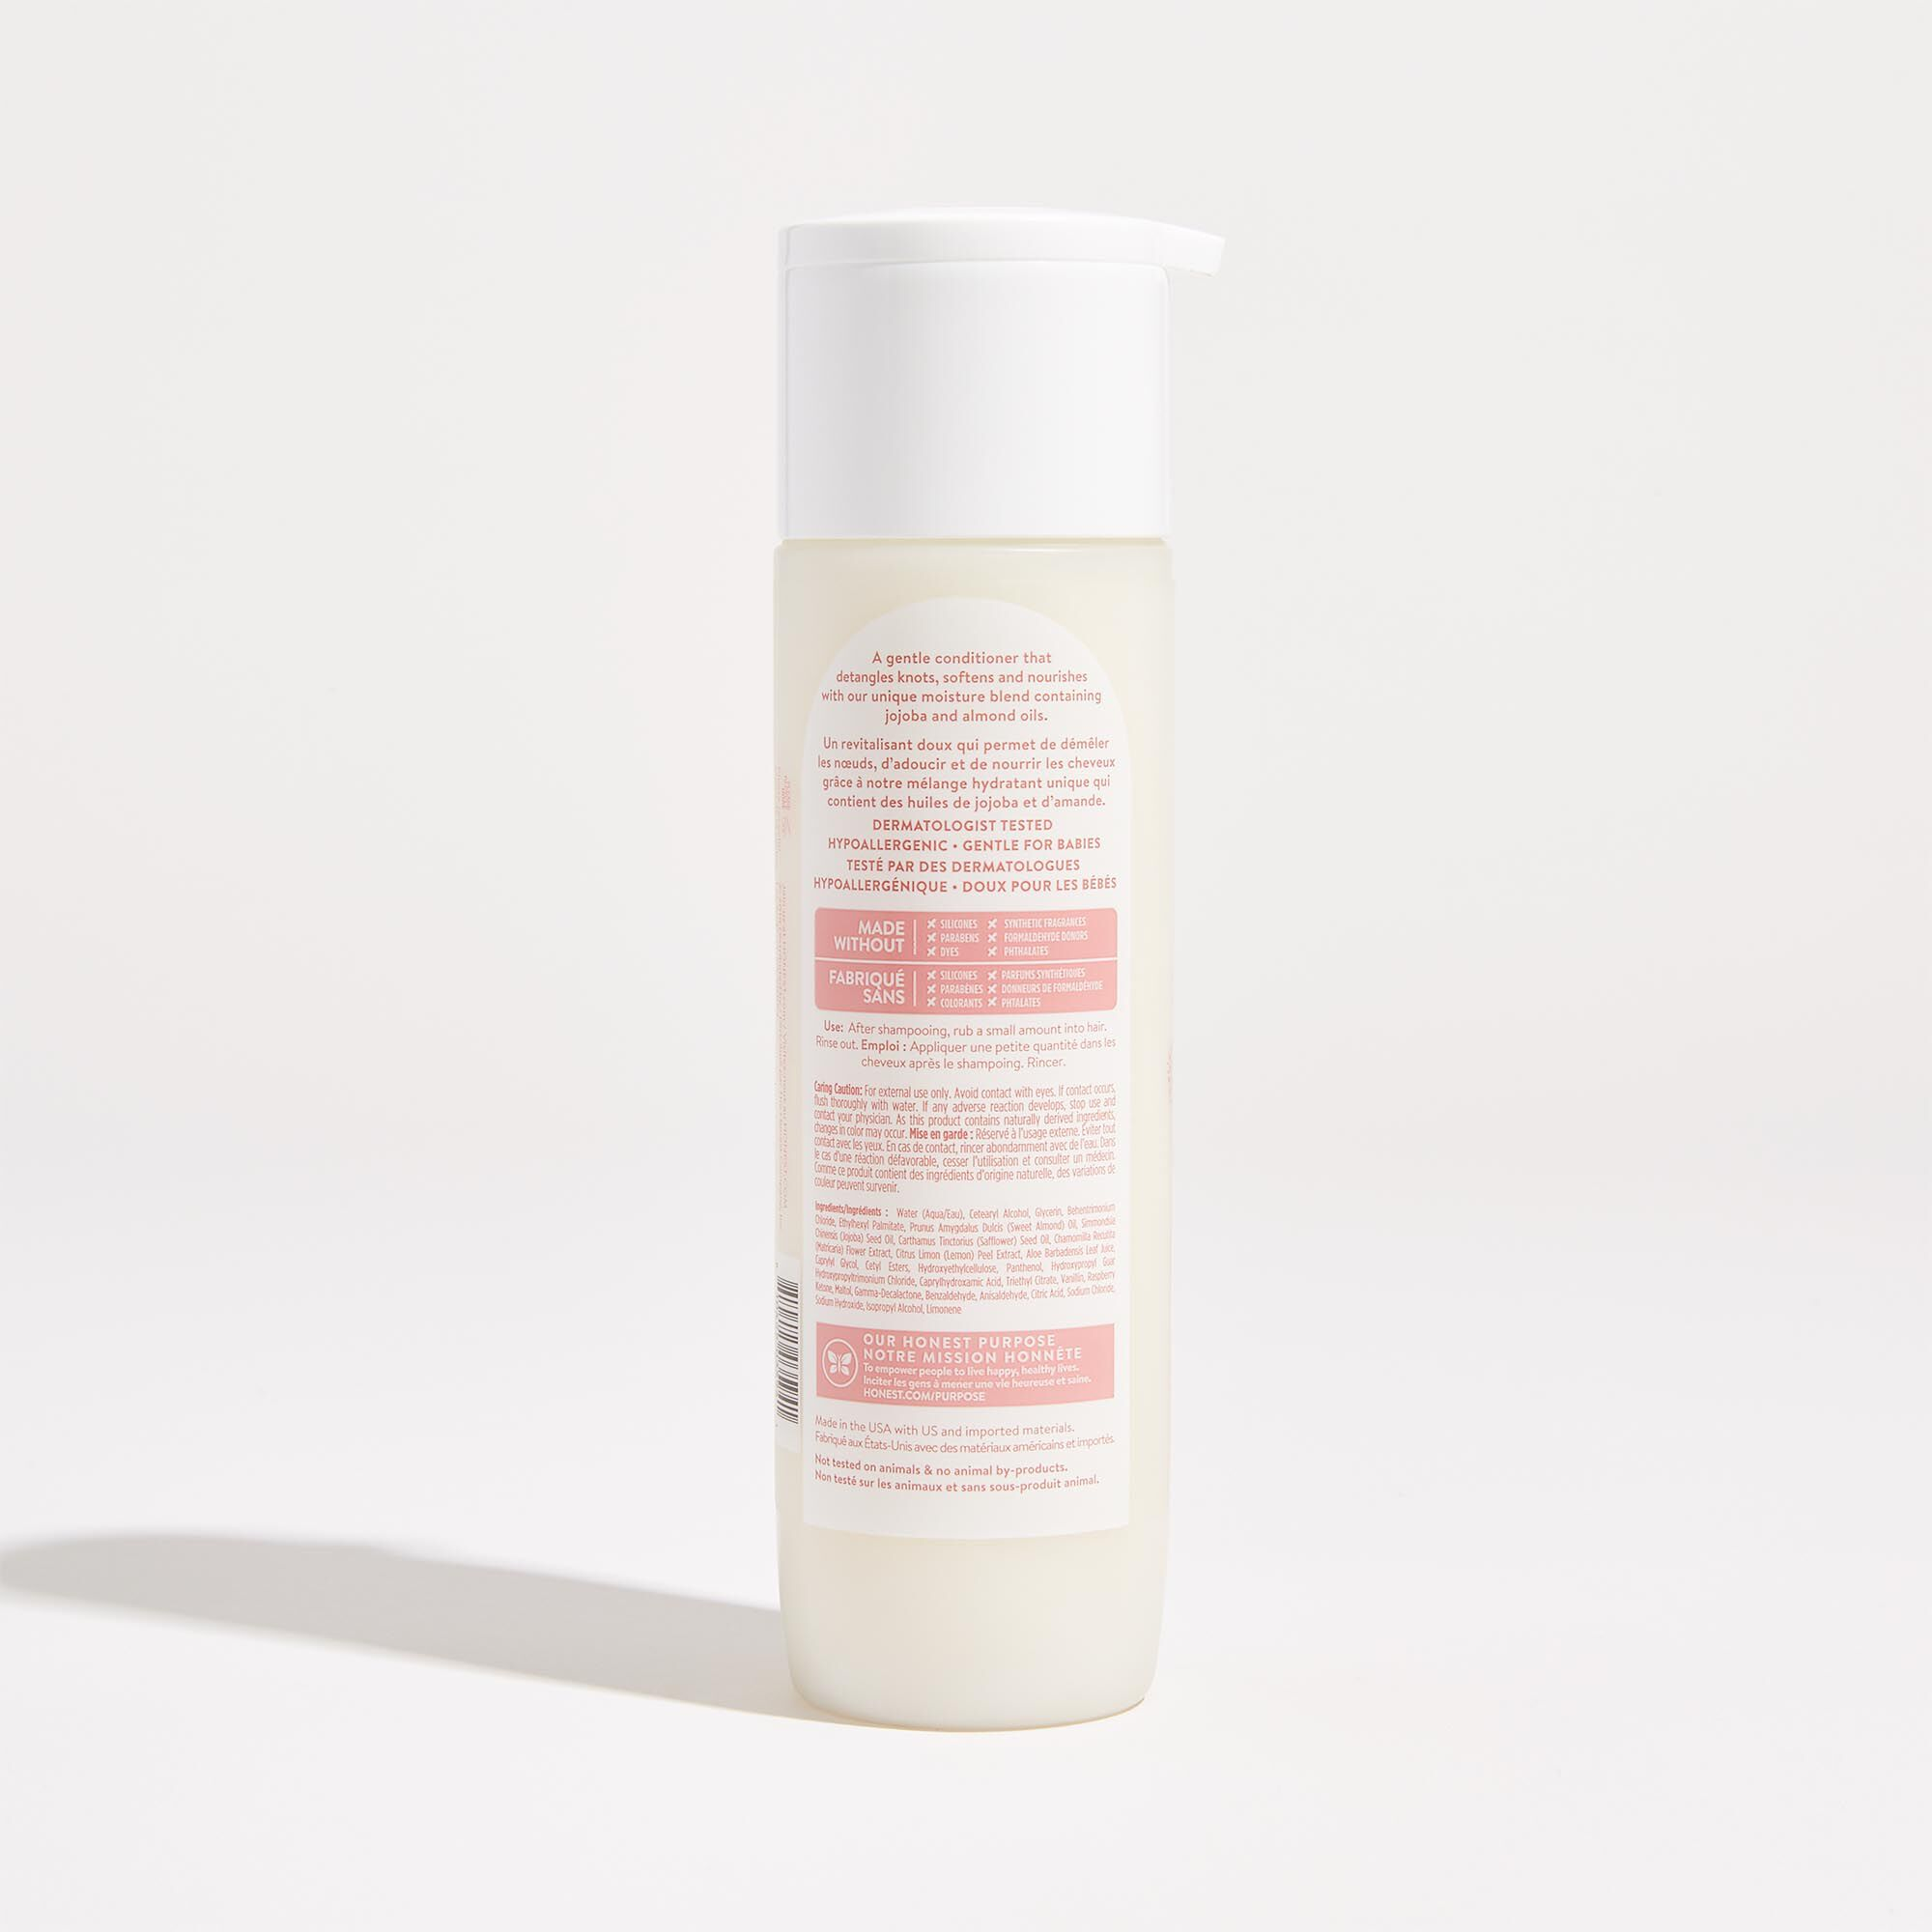 Sweet Almond Scented Conditioner Back of Product